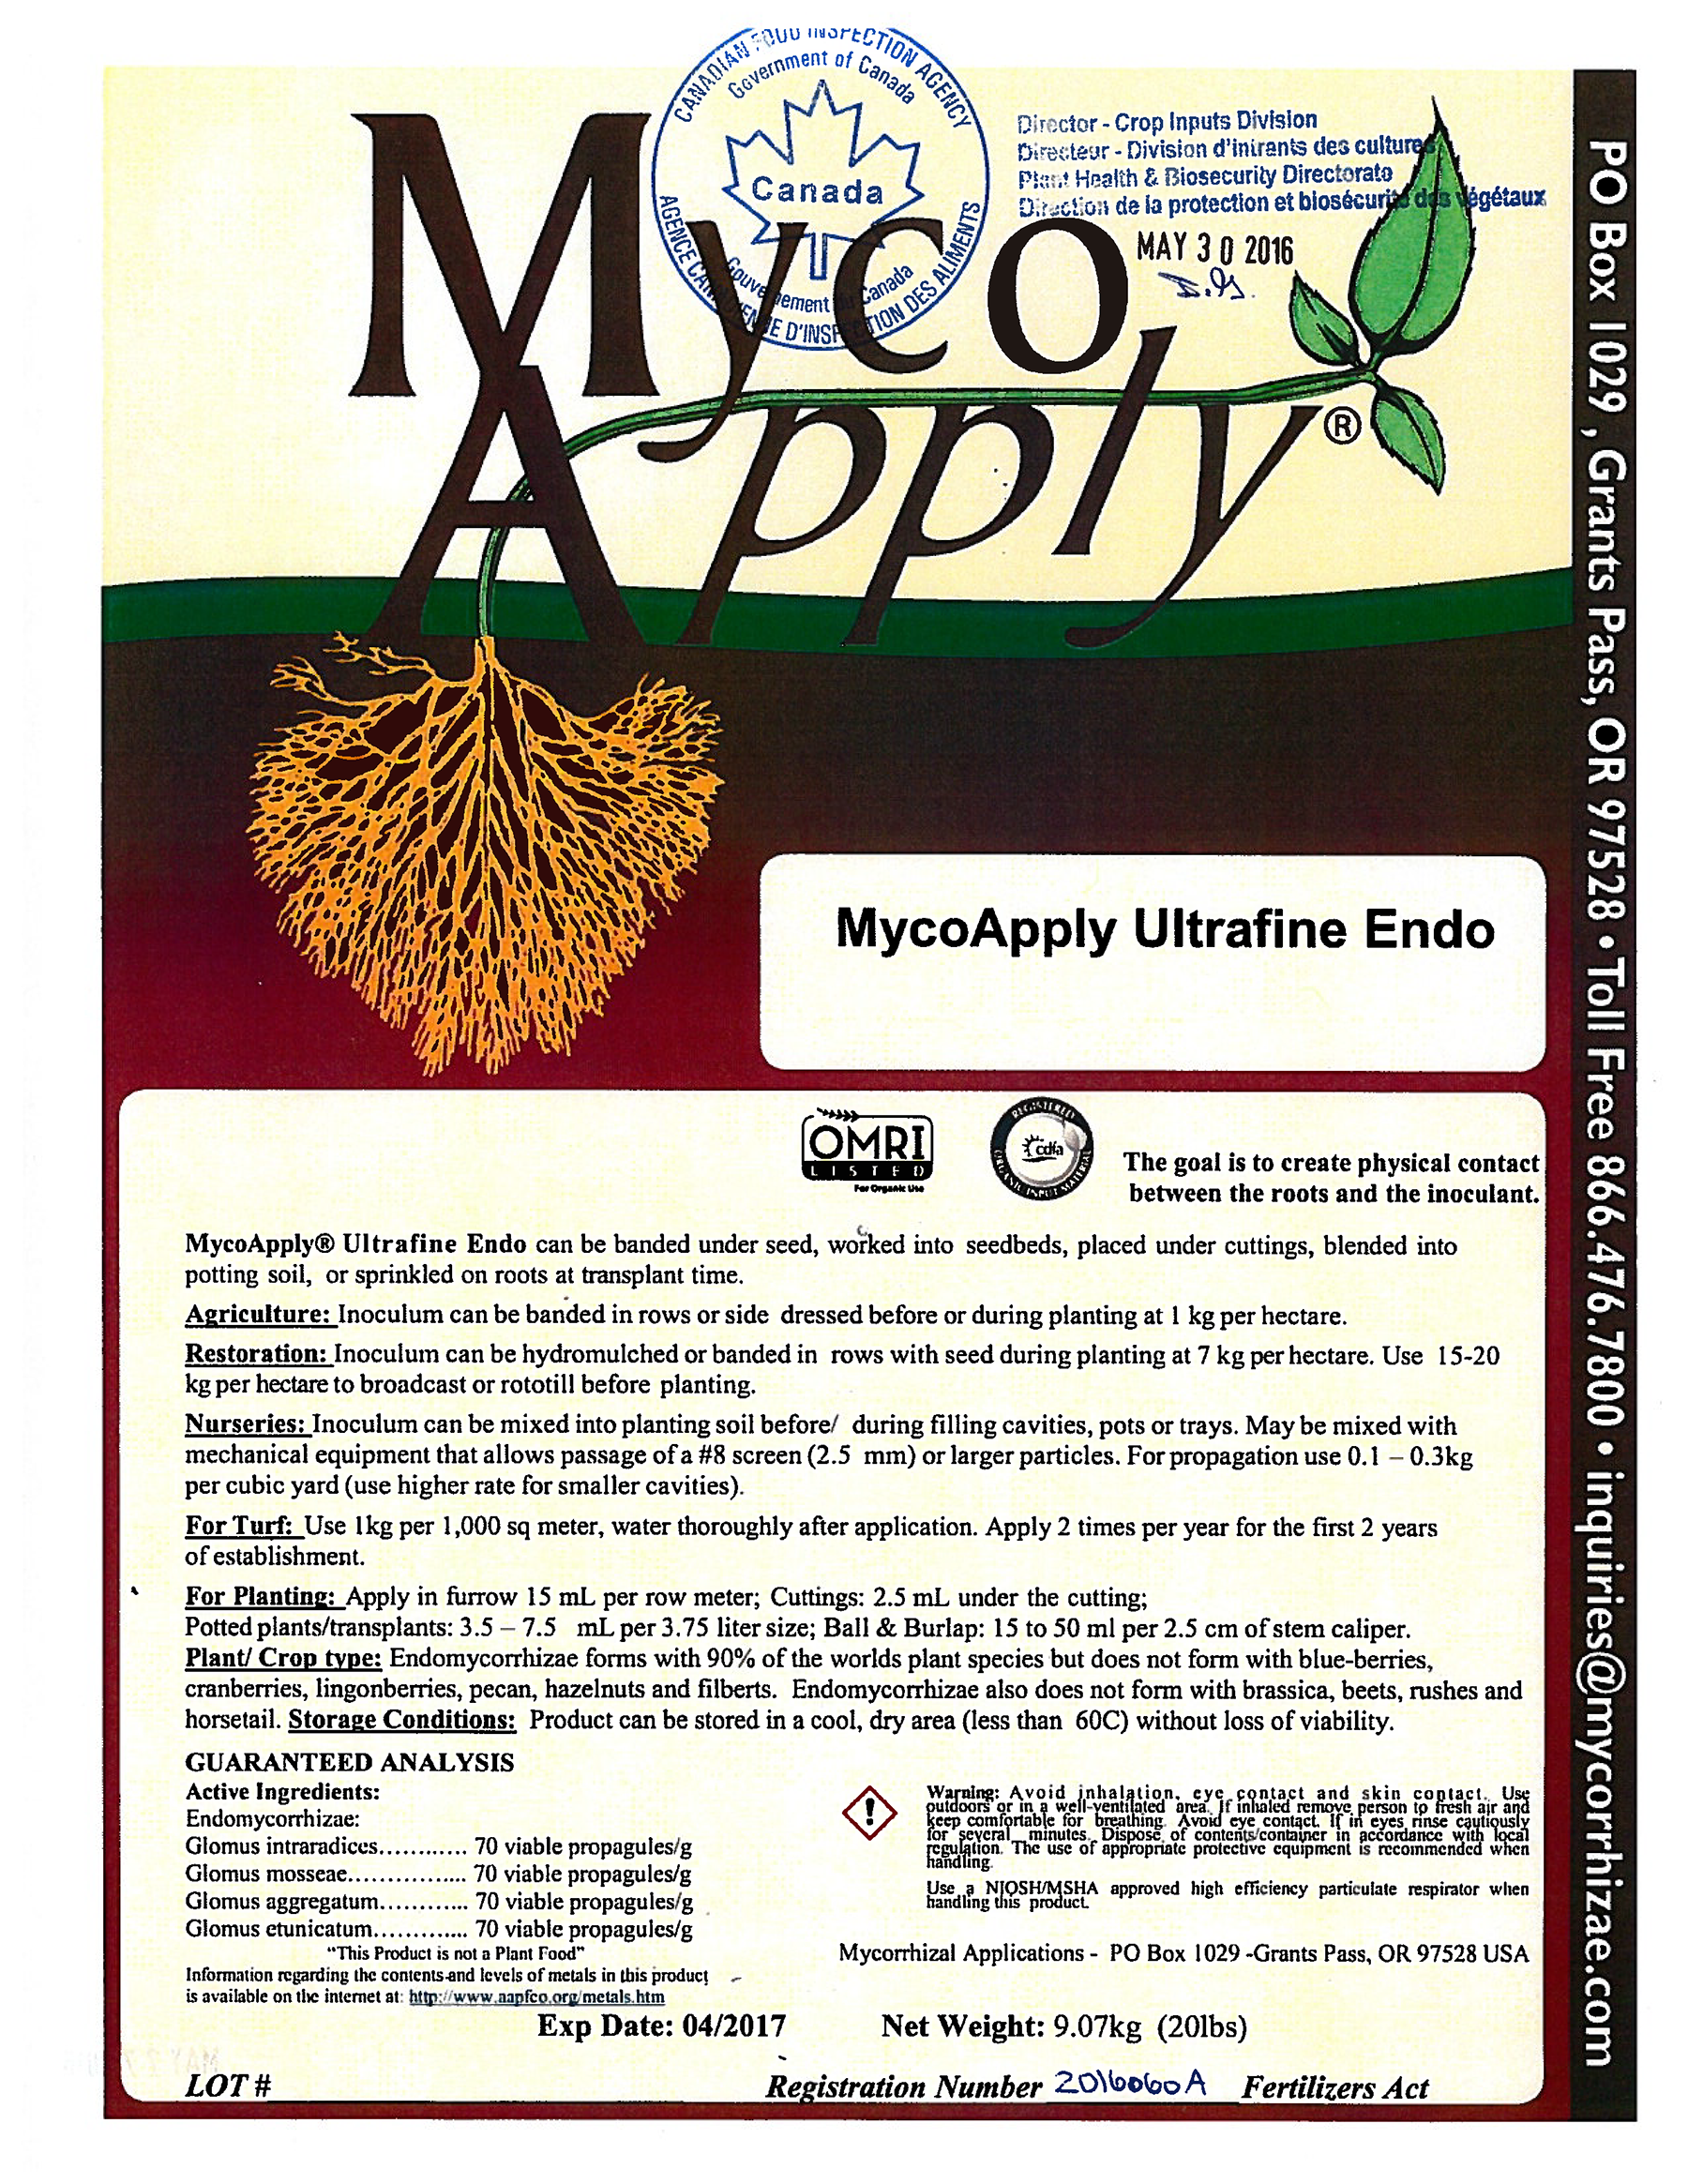 MycoApply Ultrafine